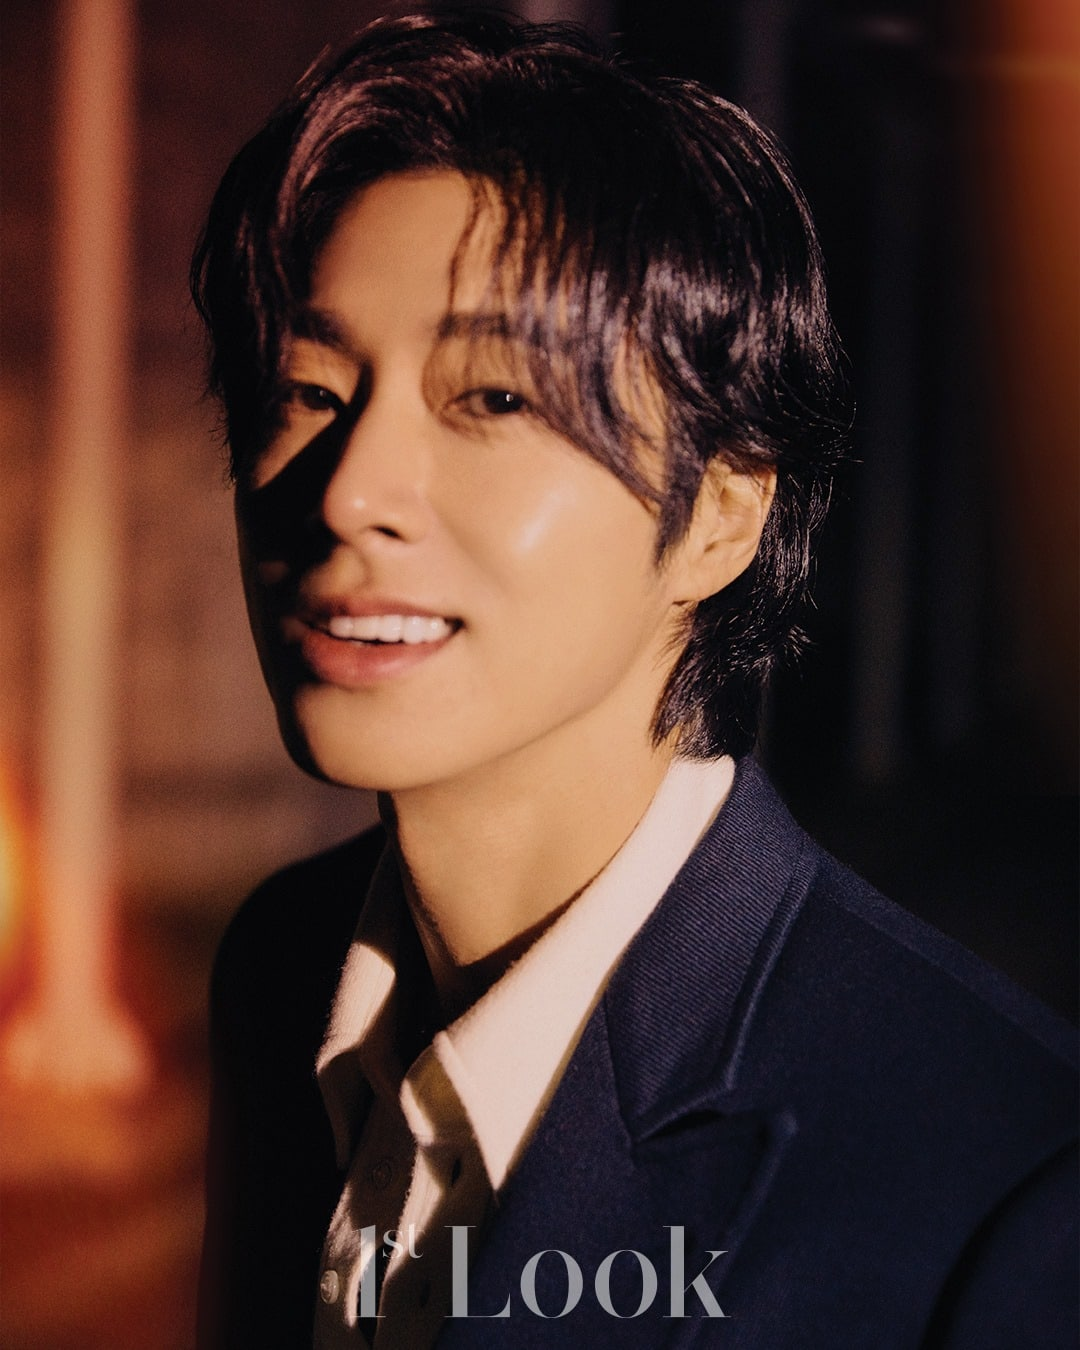 TVXQ Yunho talks about his ultimate goal in life